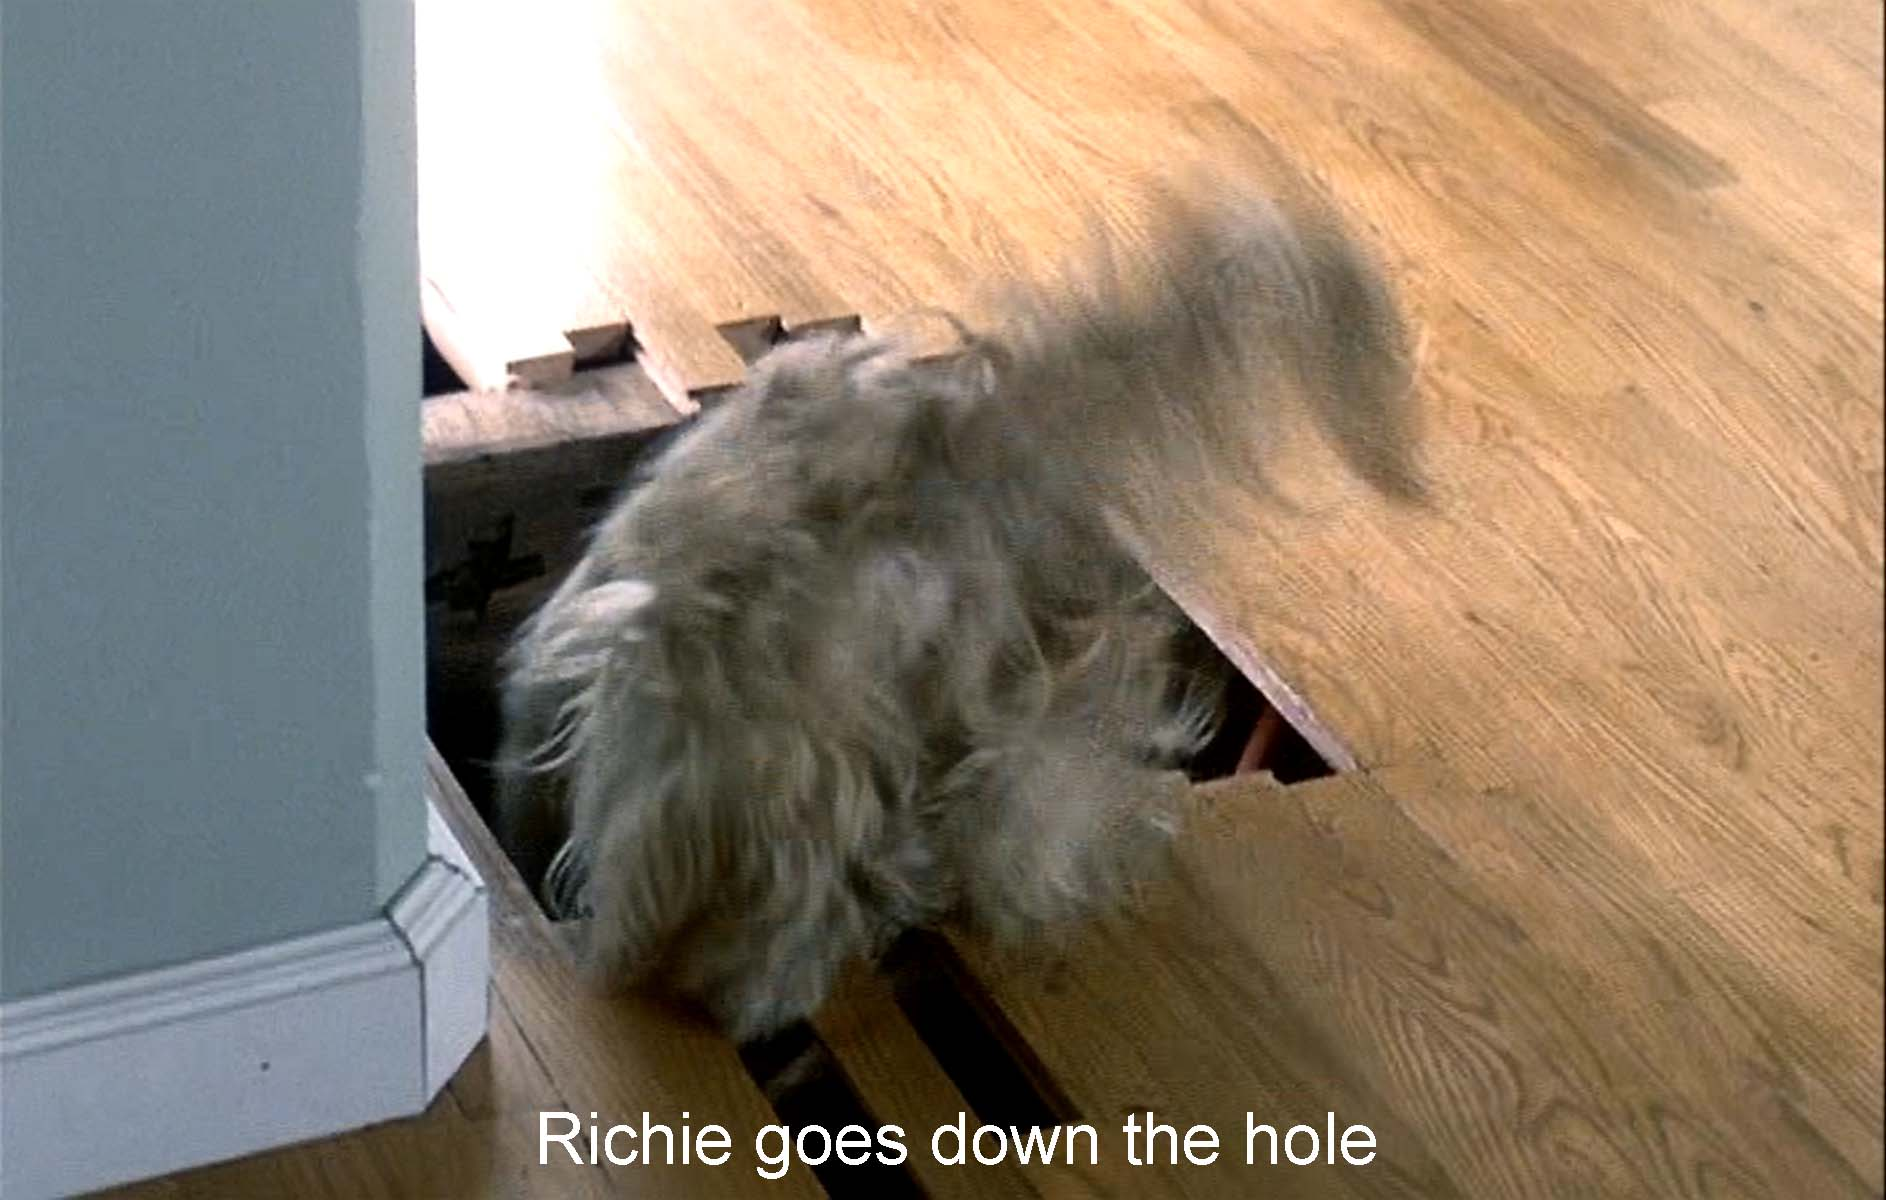 Richie goes down the hole